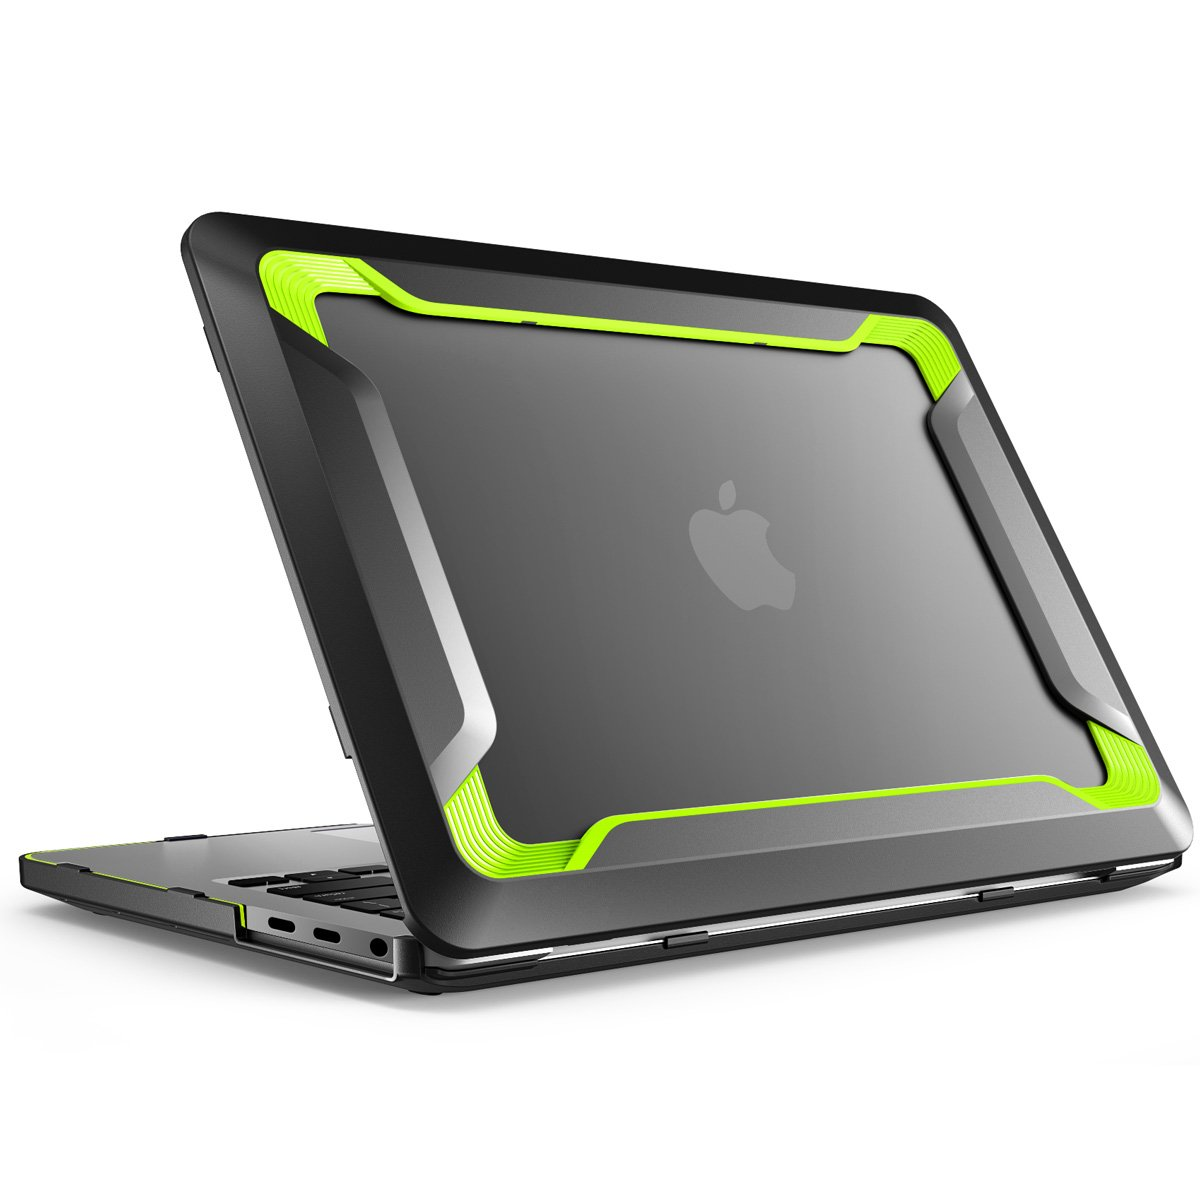 MacBook Pro 15 Case 2018 2017 2016 Release A1990/A1707, i-Blason [Heavy Duty] Slim Rubberized [Dual Layer] Cover with TPU Bumper for Apple Macbook Pro 15 inch with Touch Bar and Touch ID (Green)